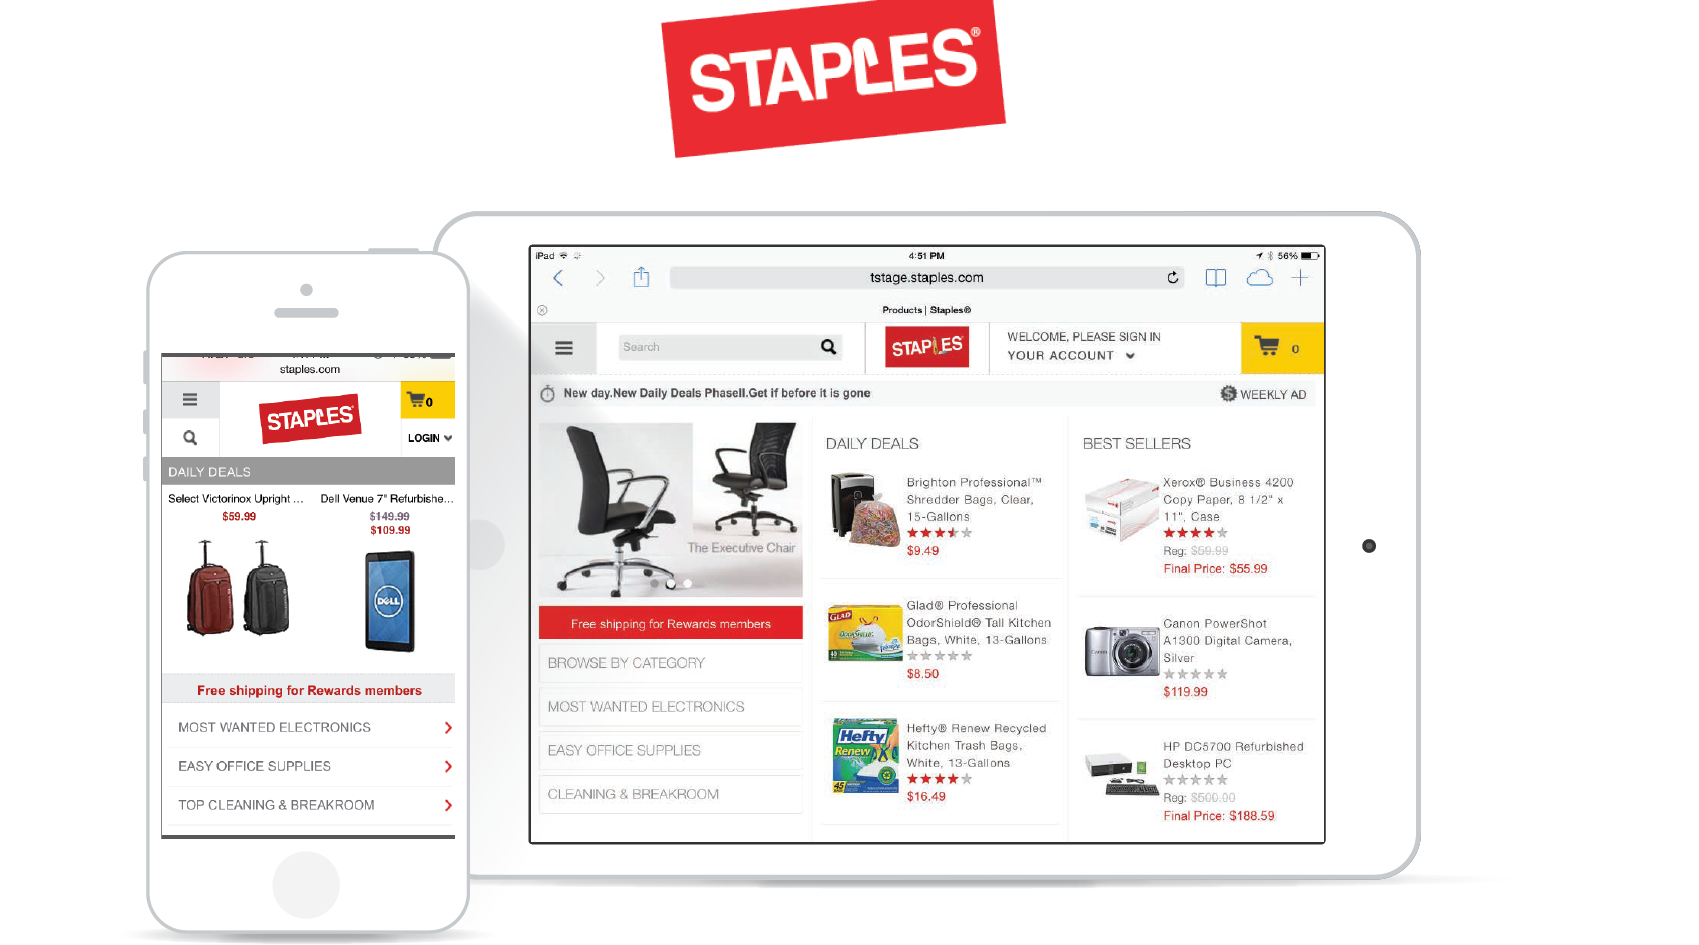 staples01.png